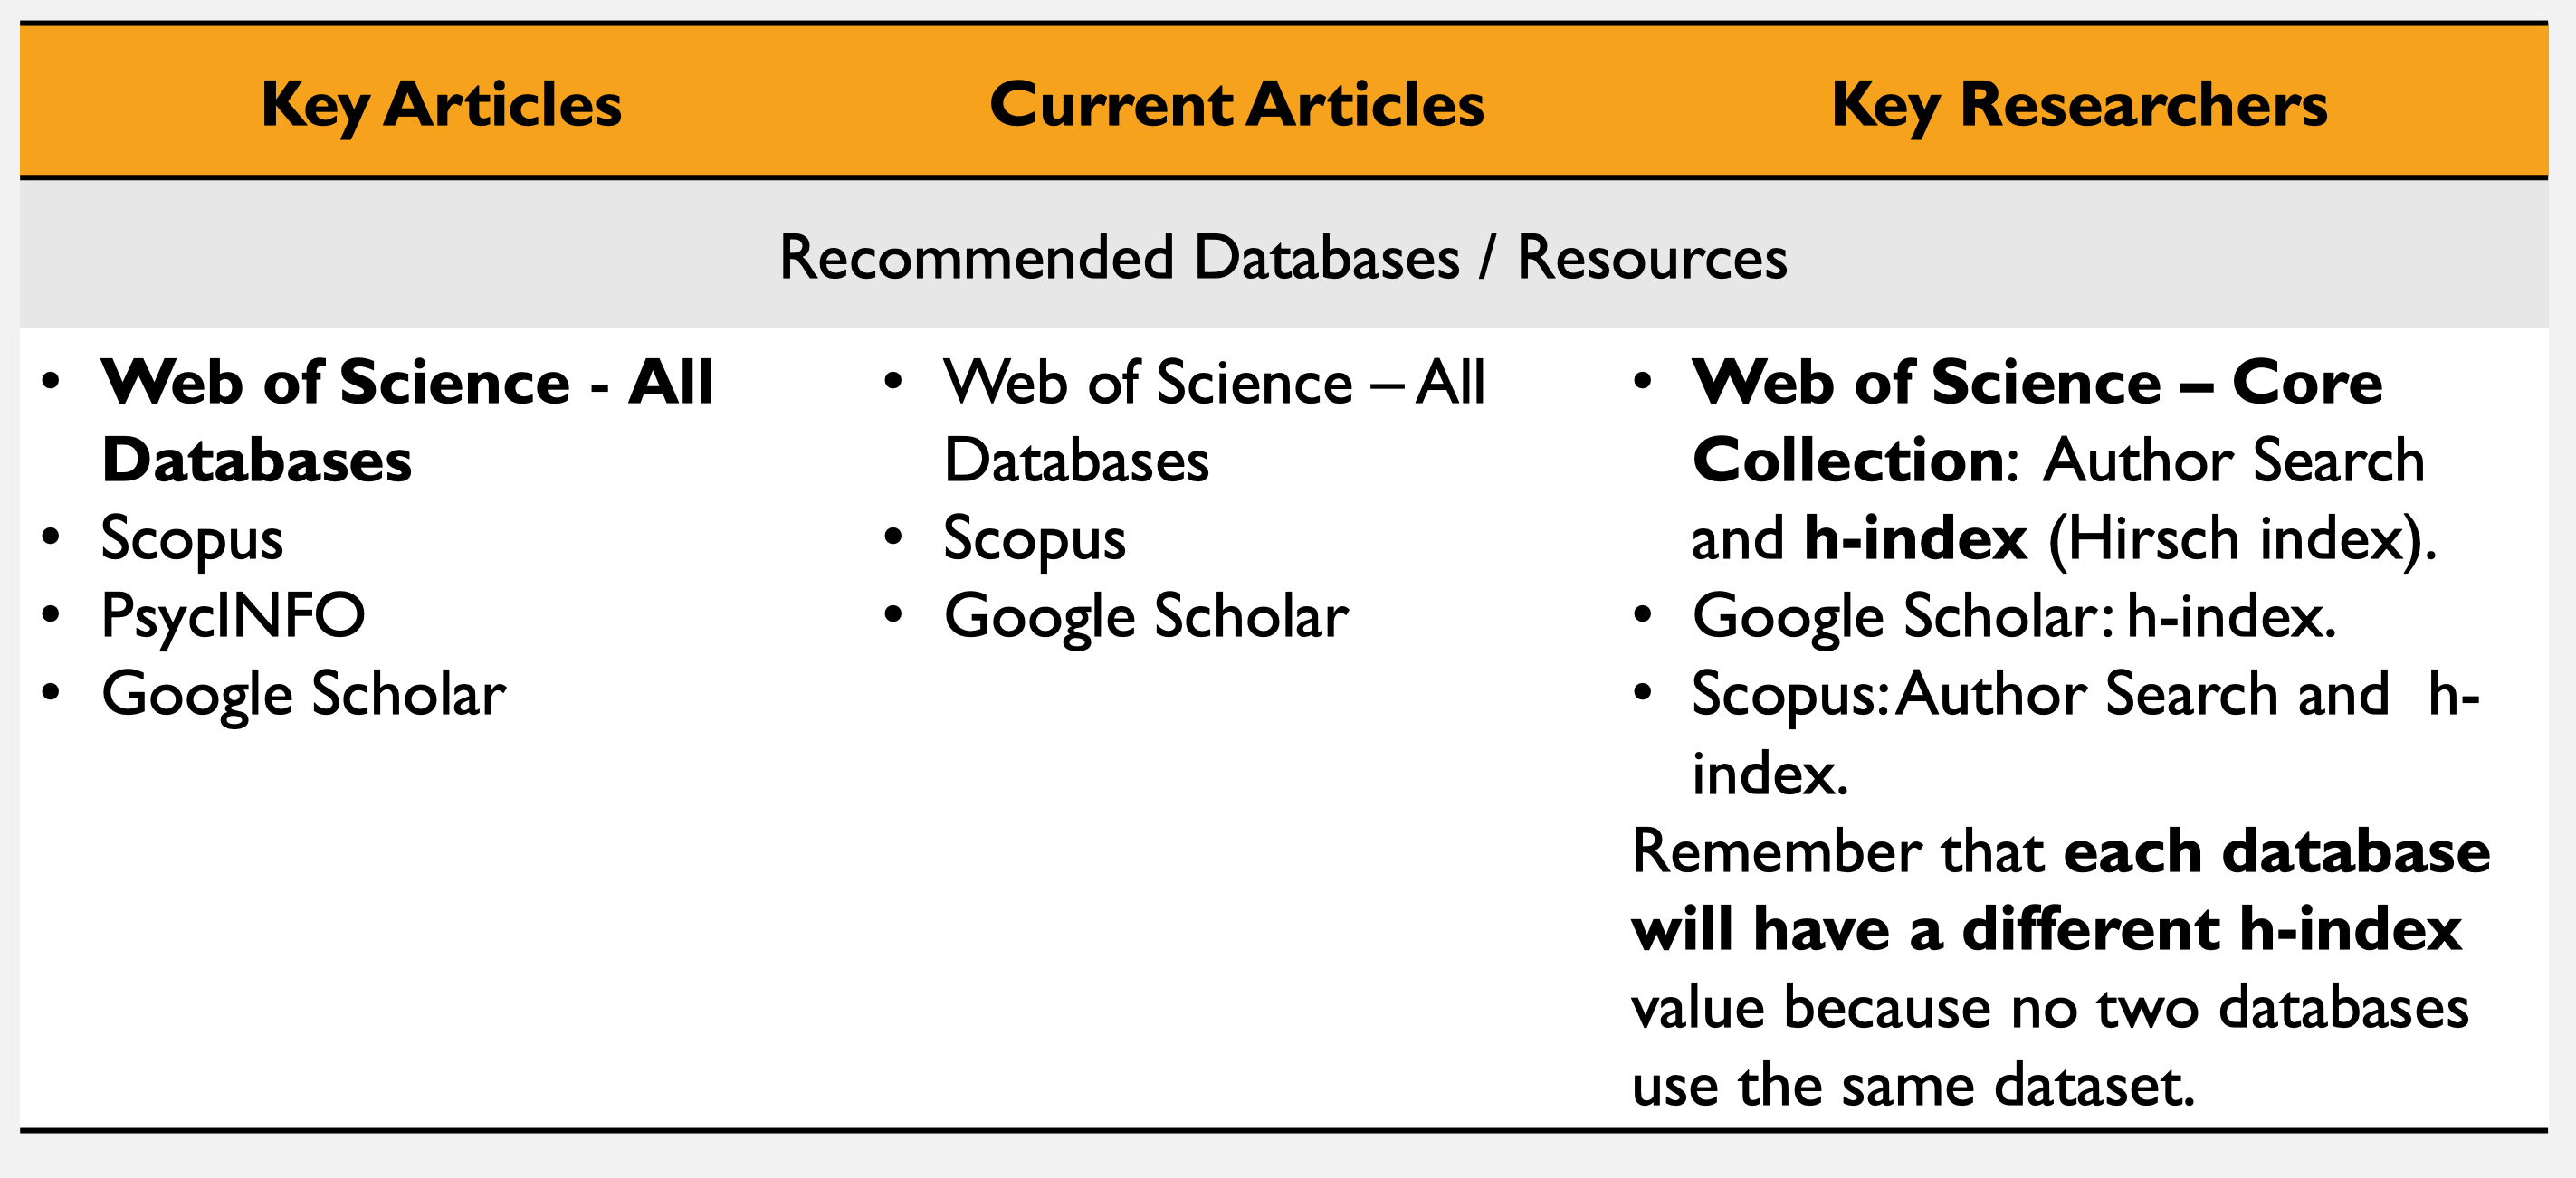 resources for recognizing key papers and researchers